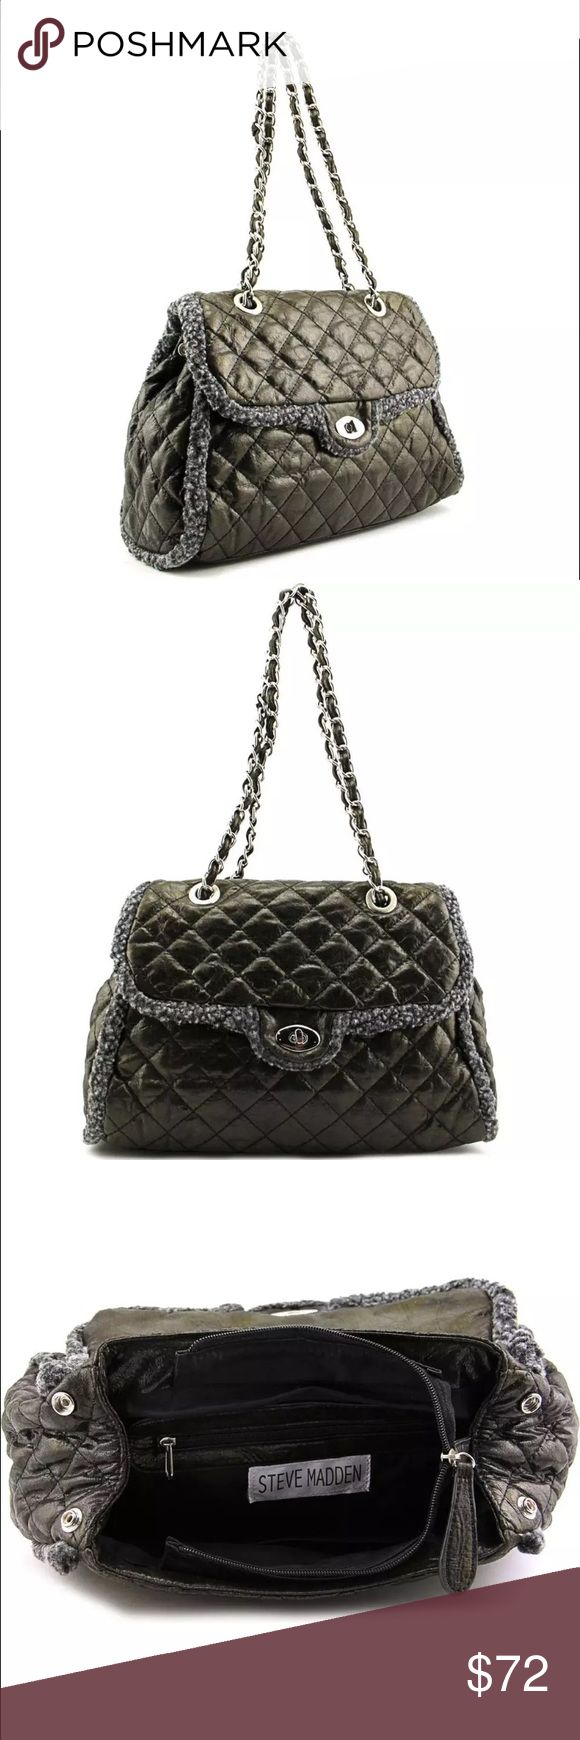 """Steve Madden Jules Black Shoulder Bag NWT RETAIL Steve Madden Jules Women Black Shoulder Bag  CONDITION: Brand New /dye may be different from bag to bag. BRAND/STYLE: Steve Madden Jules COLOR: Black MATERIAL: PVC DIMENSIONS: 10"""" W x 10.5"""" H x 5"""" D SHOULDER STRAP DROP: 12.0 in. SKU: 2599422 Carry your belongings with ease in the Jules bag from Steve Madden . Made of quality PVC materials, this will keep your essentials on-hand with great style. Ask questions if needed since Poshmark sales are…"""